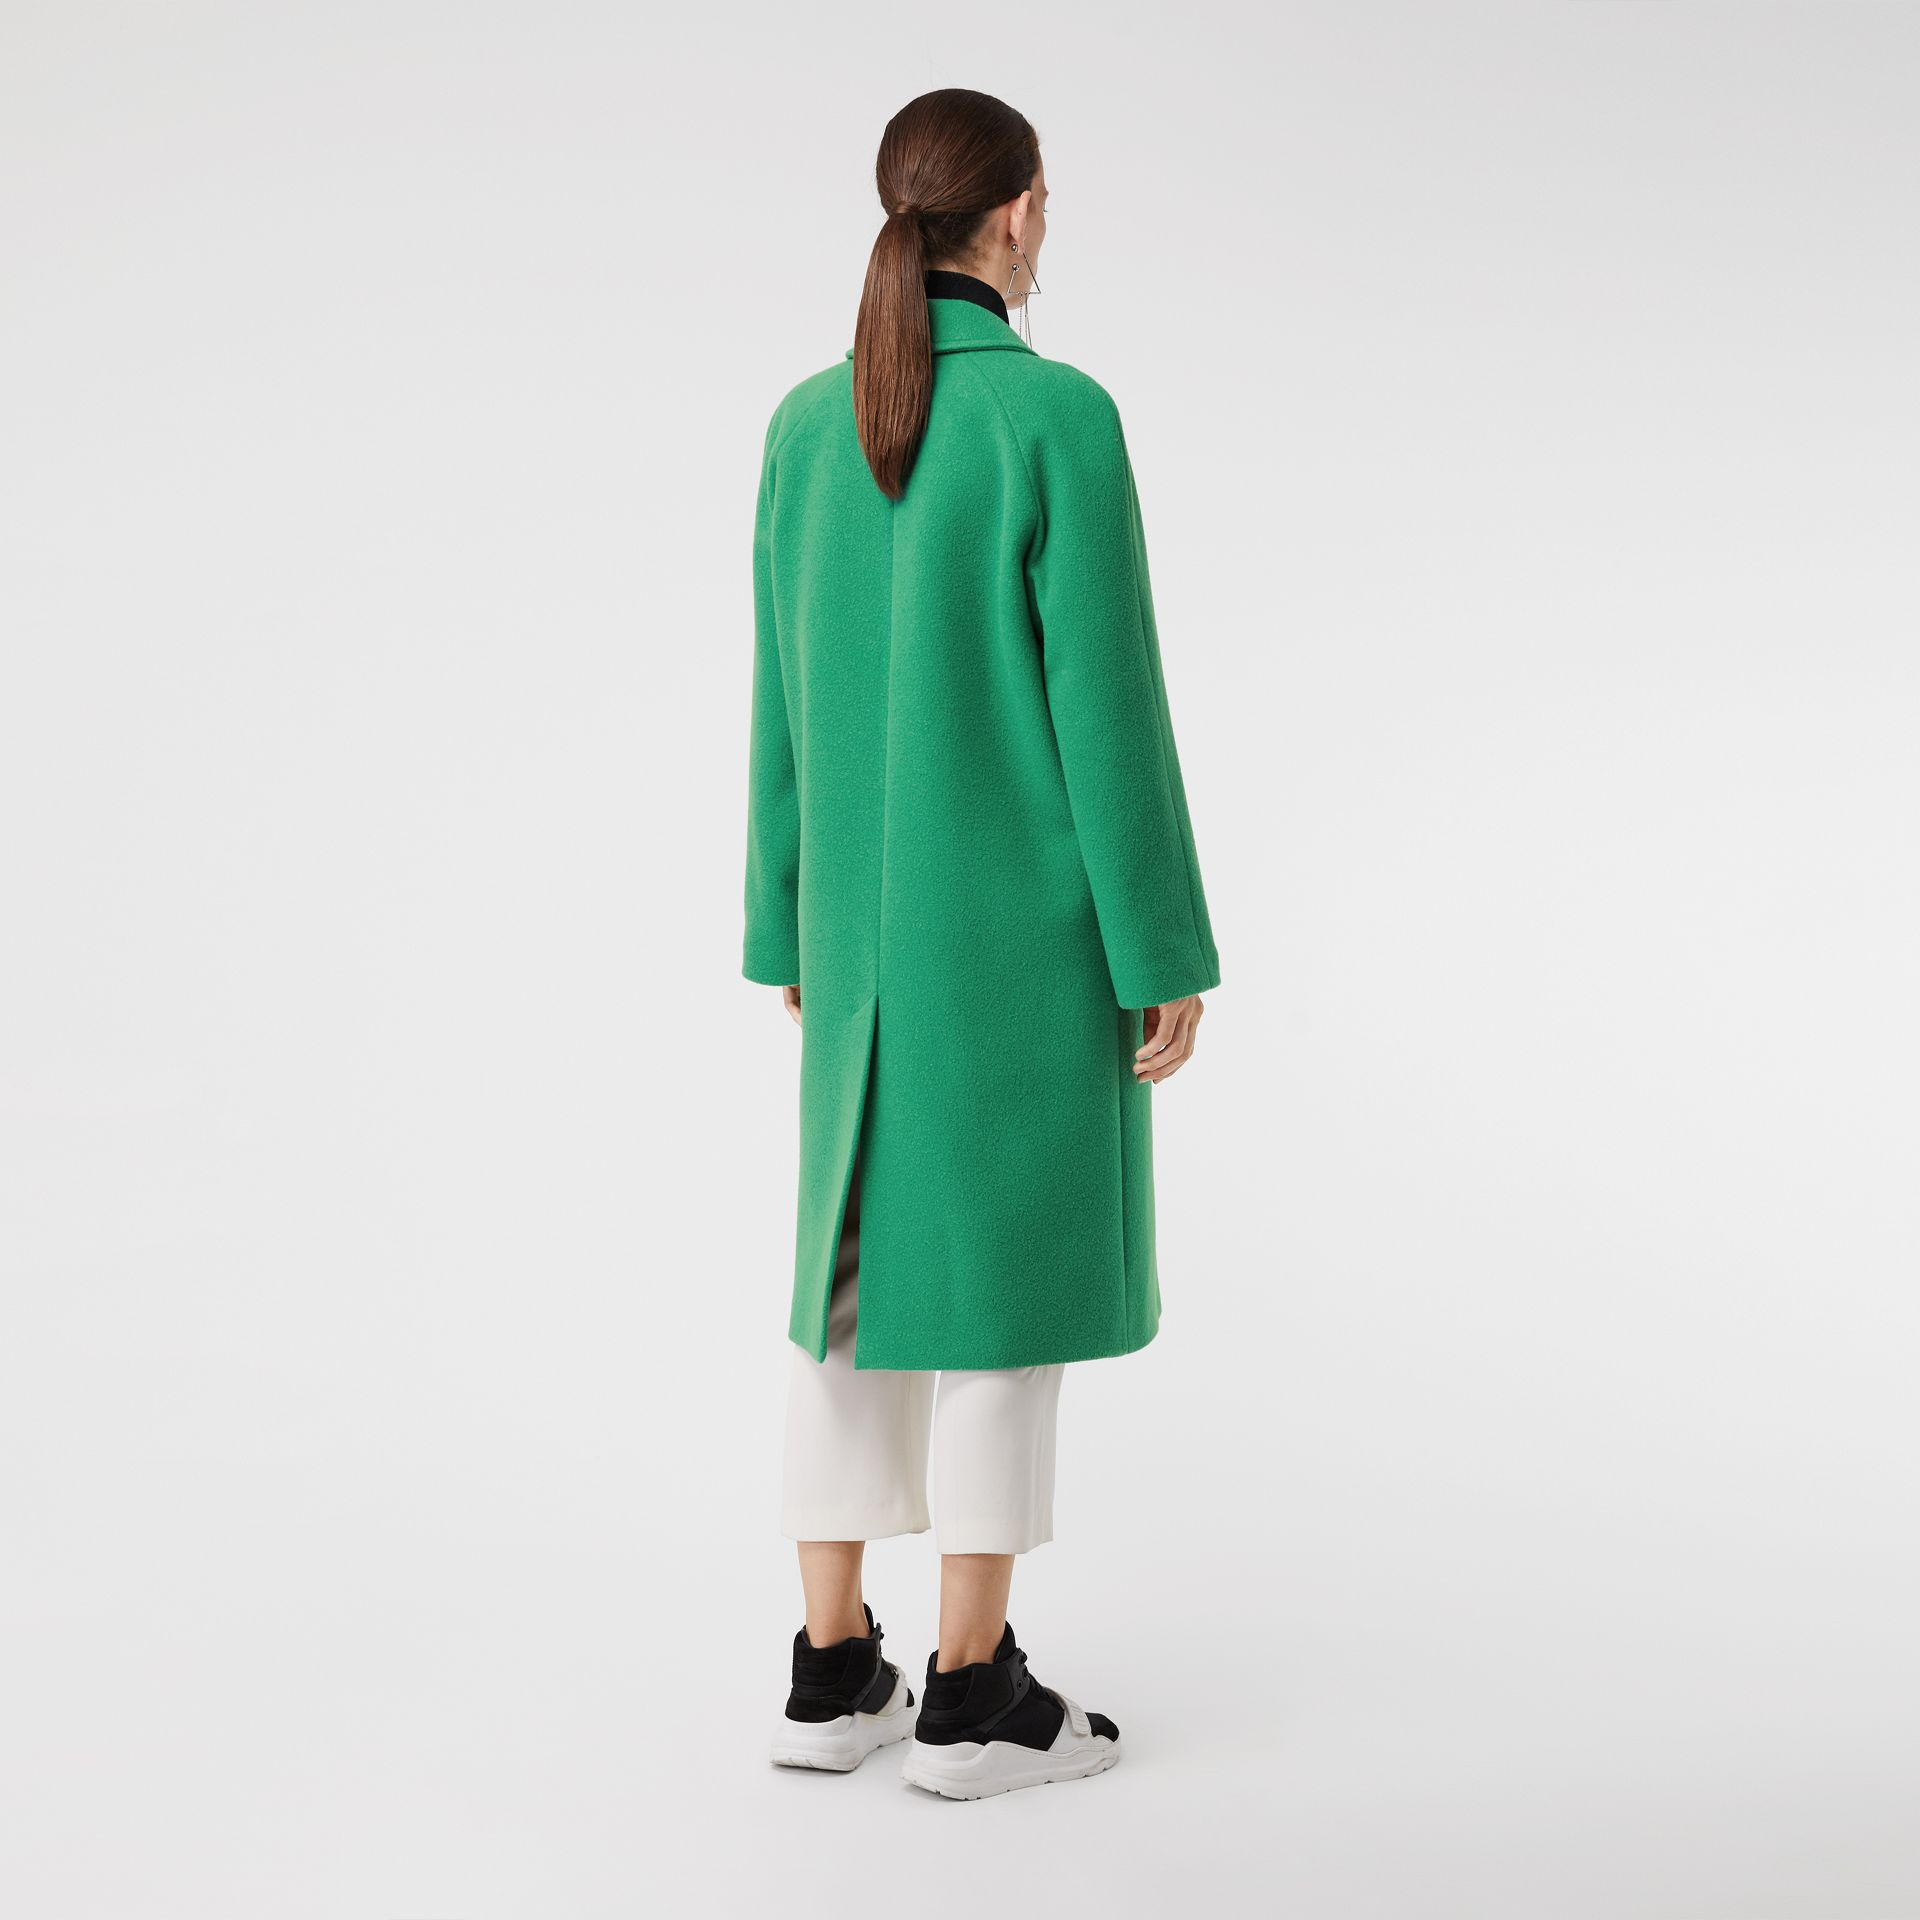 Wool Blend Tailored Coat in Bright Green - Women | Burberry - gallery image 2